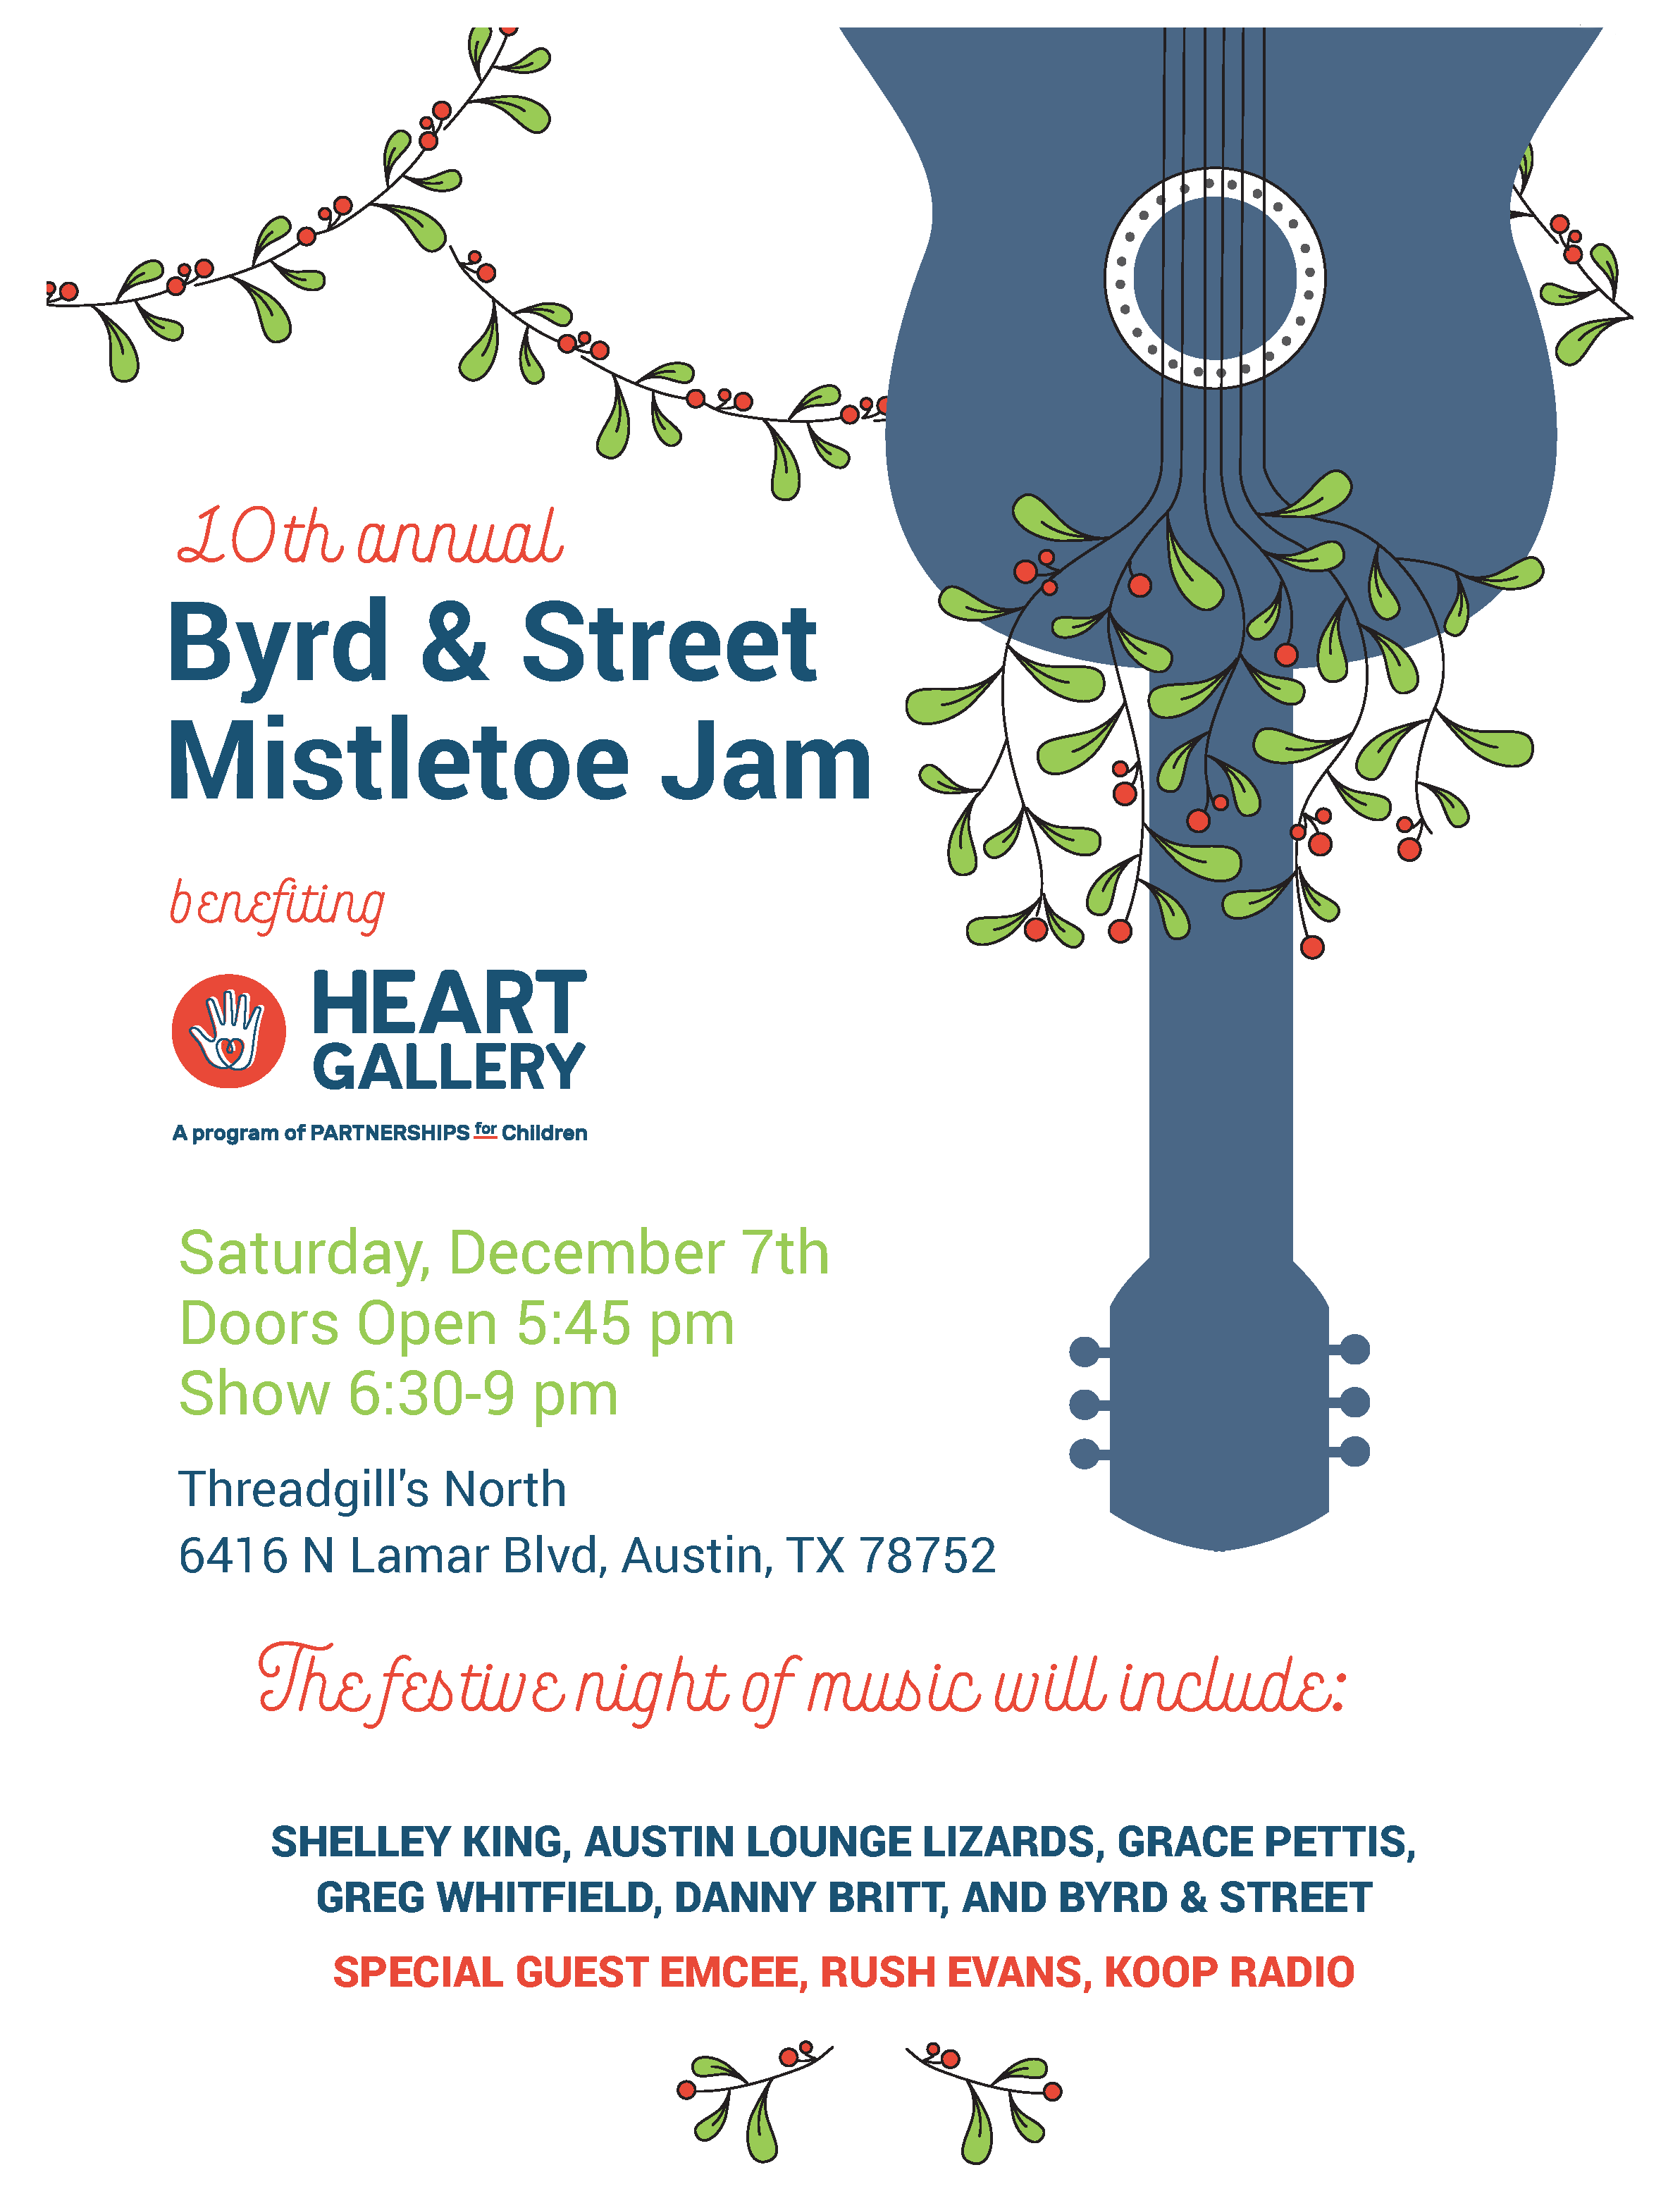 Mistletoe Jam event invitation